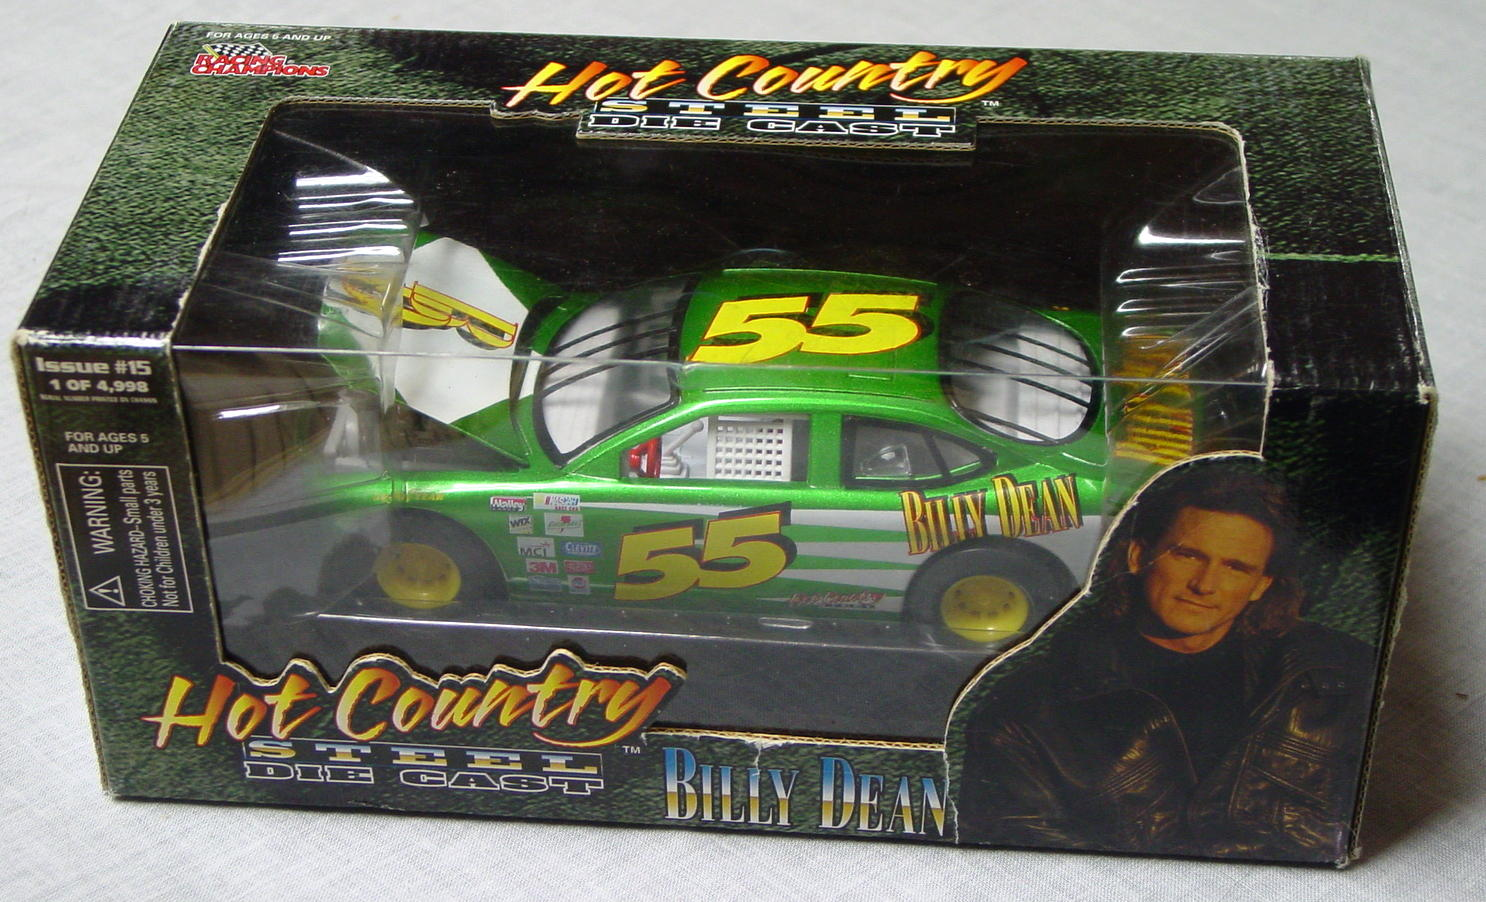 1_24 Scale - RC Hot Country Billy Dean green 55 stock car